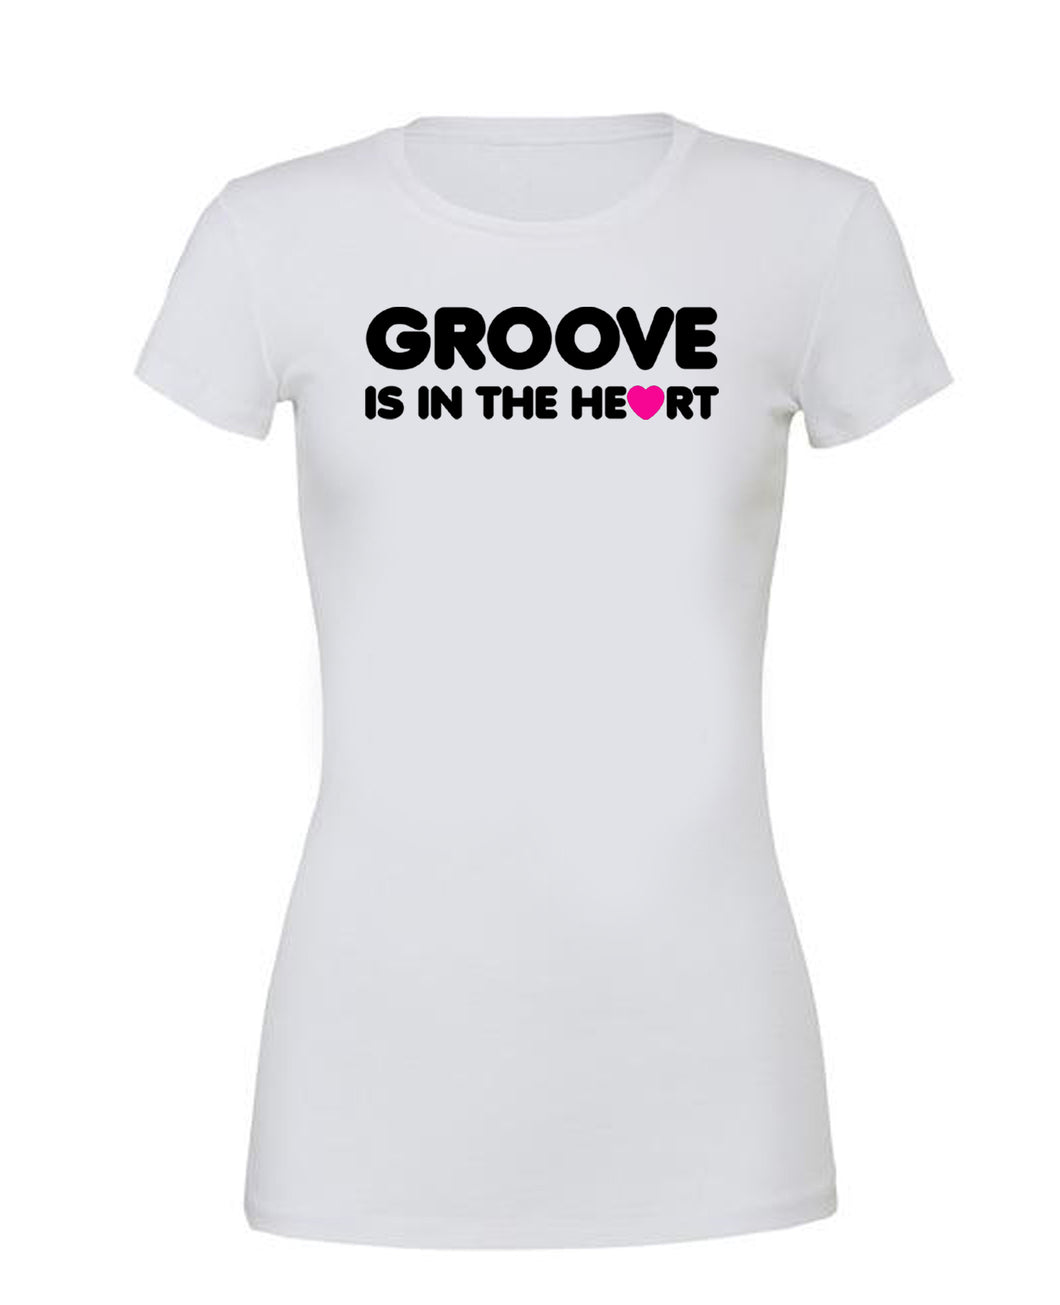 GROOVE IS IN THE HEART - T Shirt White - SoreTodayStrongTomorrow